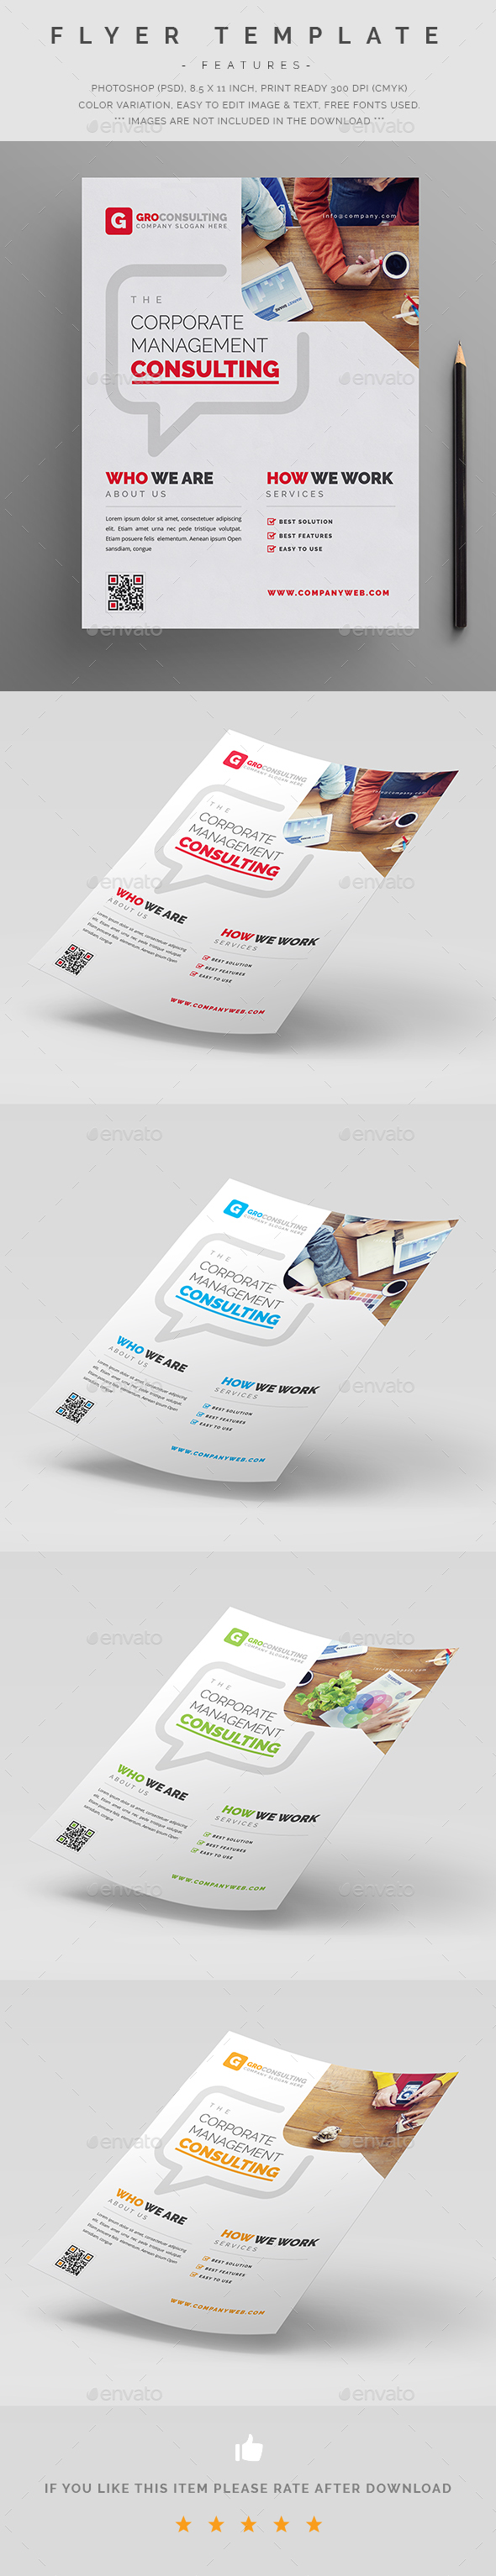 Corporate Flyer Template Psd  Corporate Design